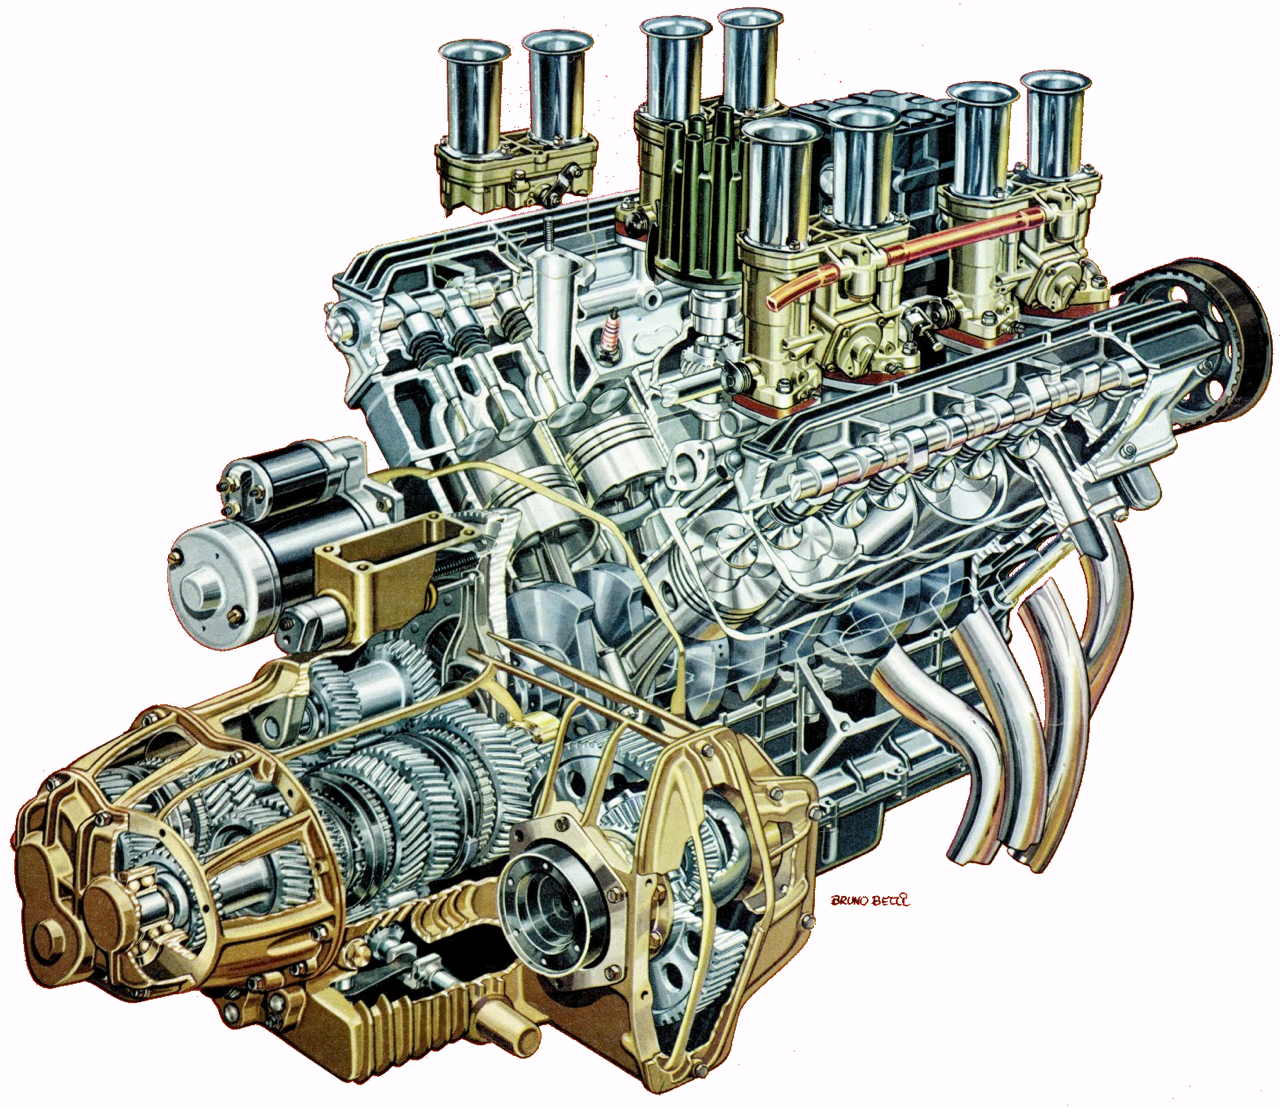 v8 engine drawing at getdrawings com free for personal use v8 rh getdrawings com First Ford V8 Engine Henry Ford V8 Engine